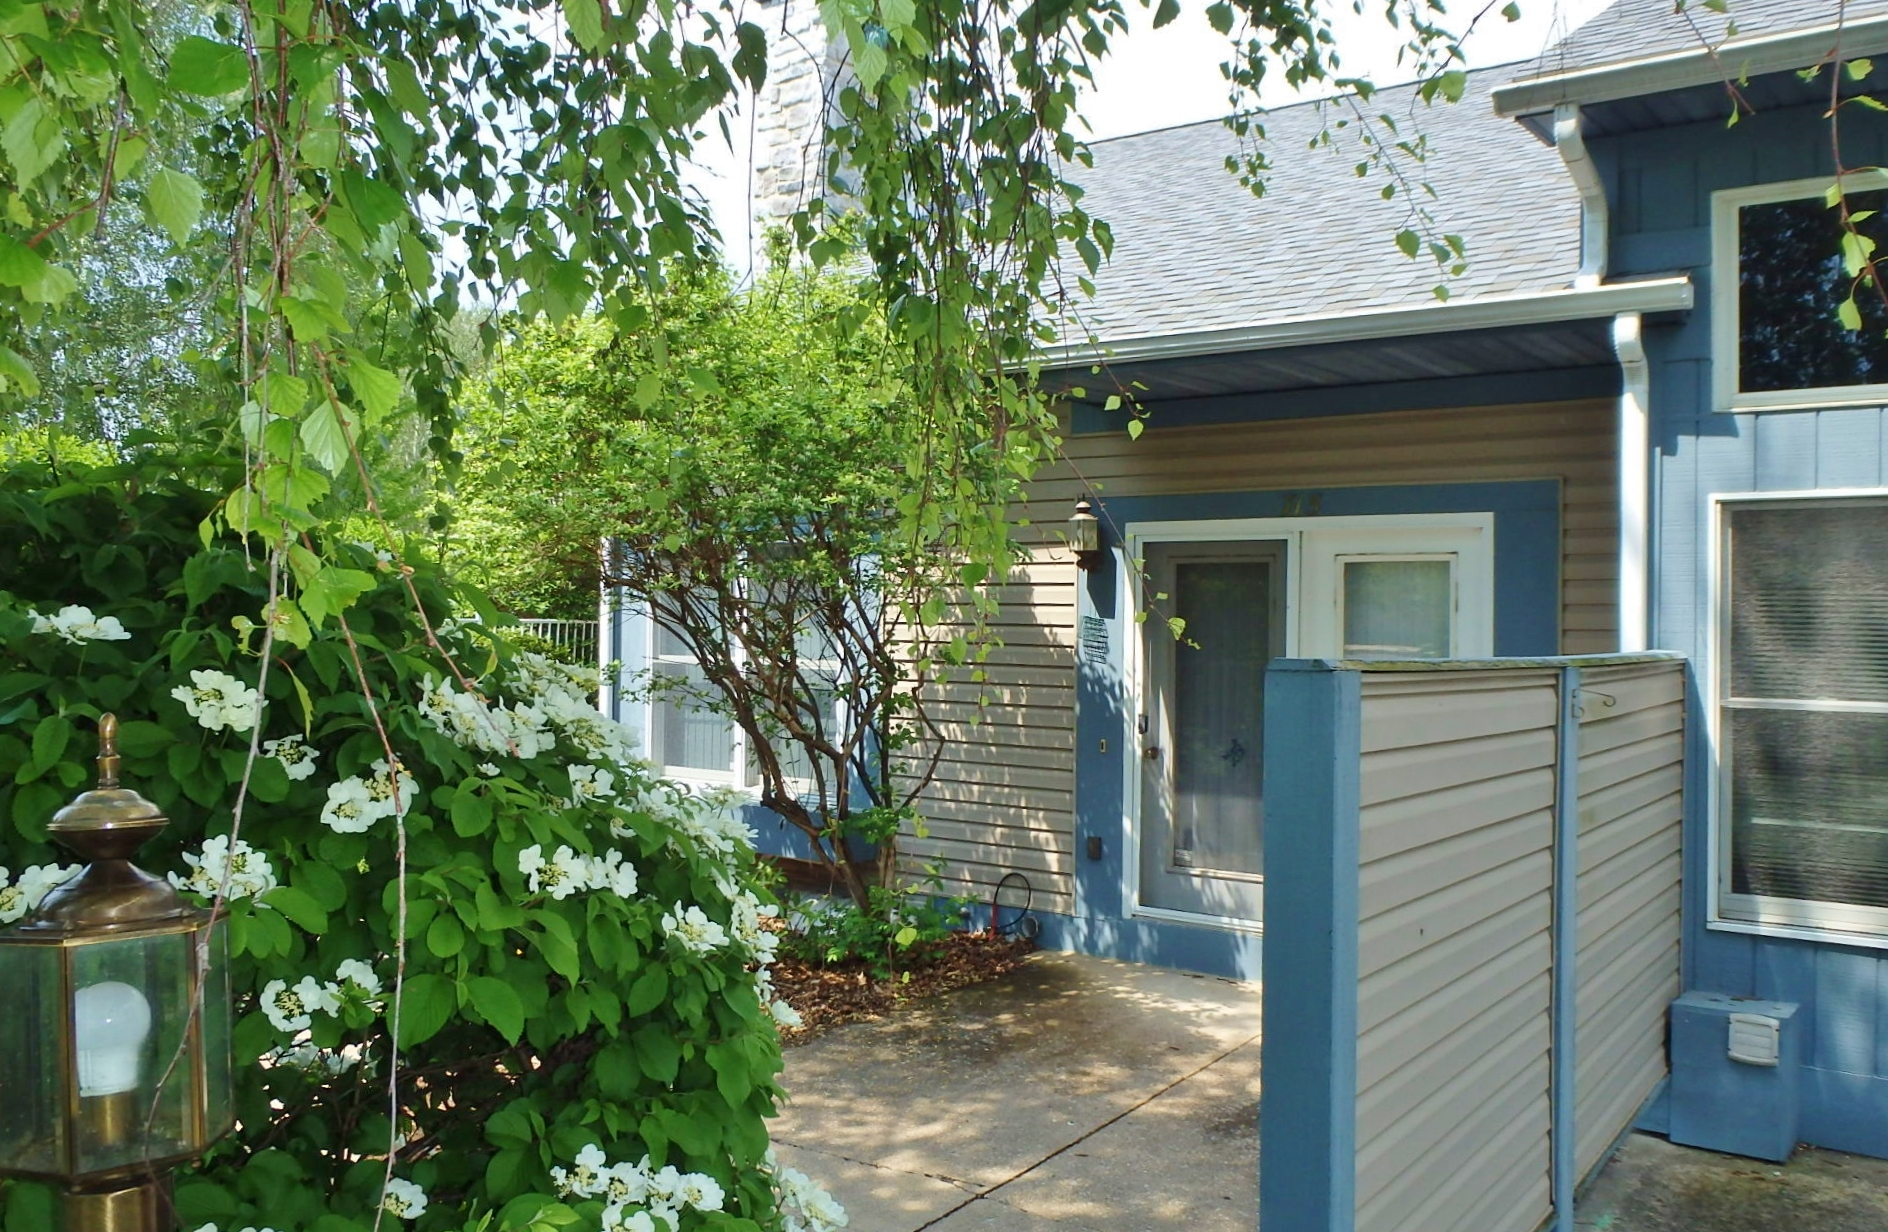 Featured photo of the 3-bedroom townhouse for rent at 715 Tussey View Lane.